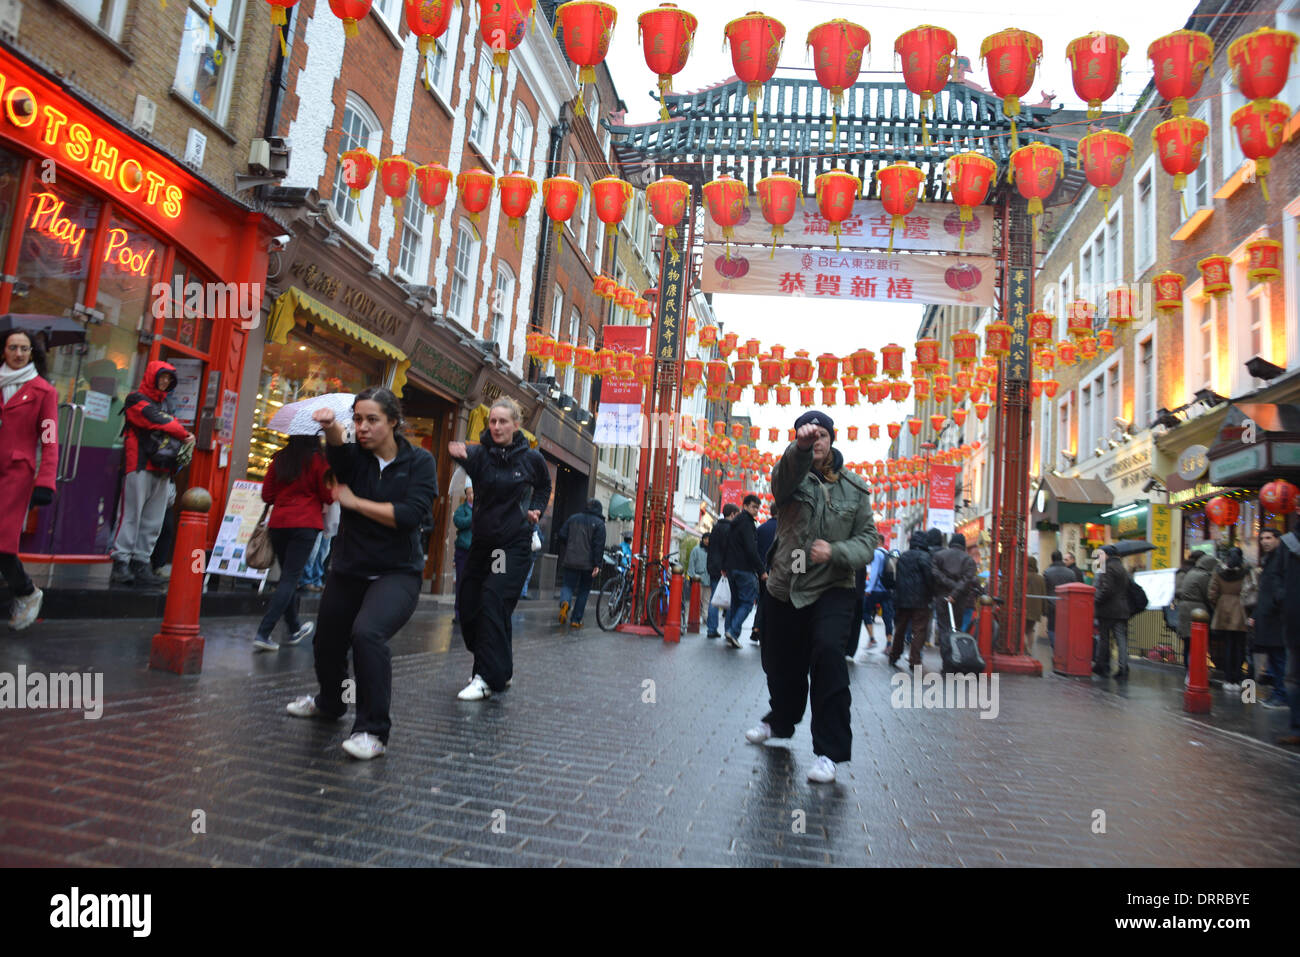 London UK, 31th January 2014: My Asian Planet live on BBC World New boardcast the celebration Chinese new Year of Stock Photo